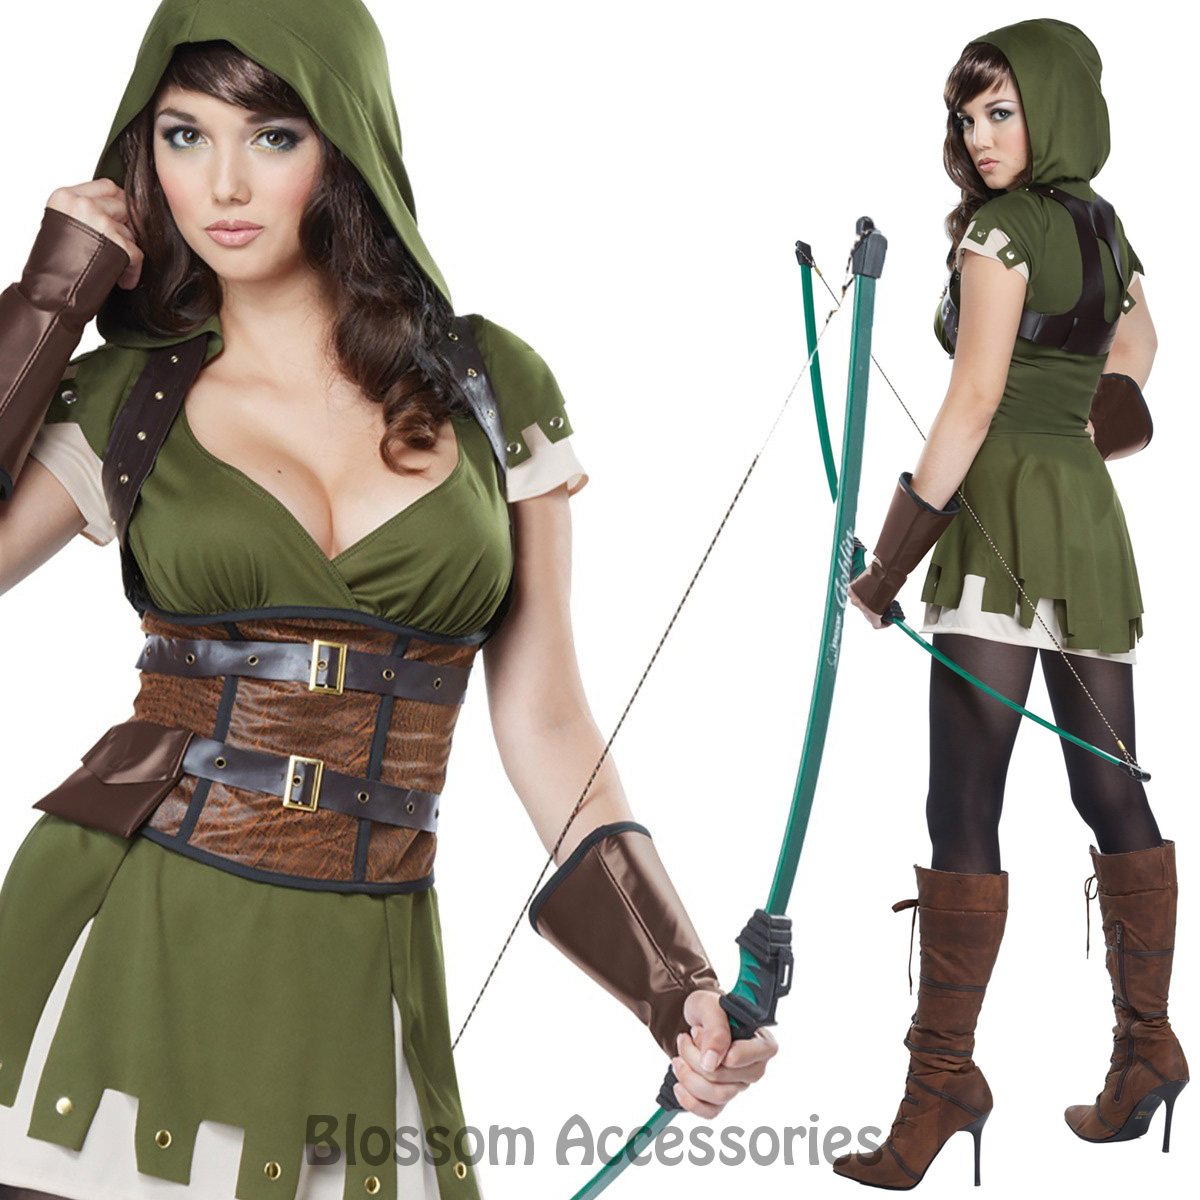 ca52 lady robin hood huntress warrior medieval isabel archer womens